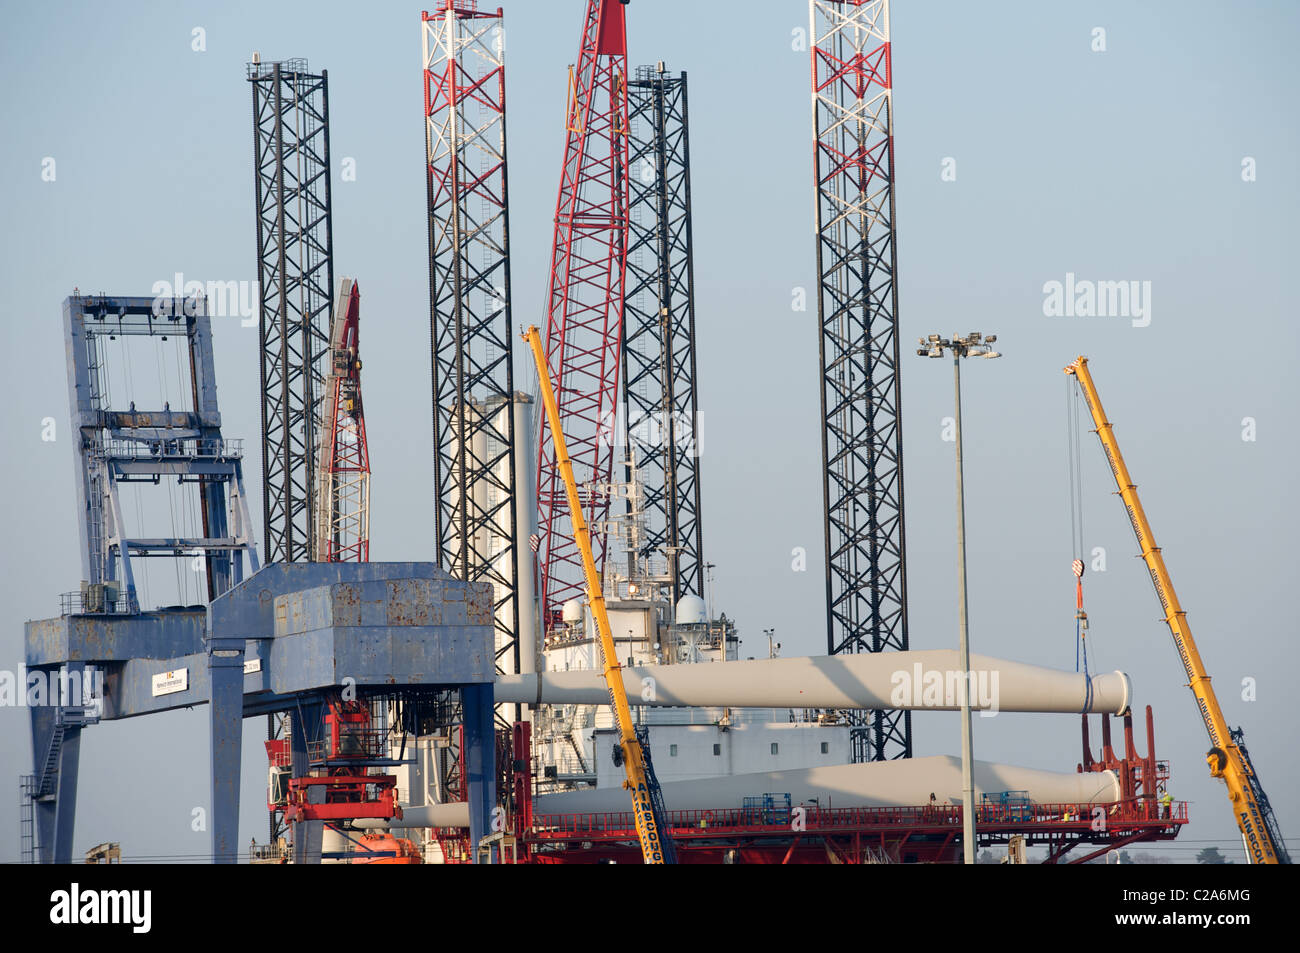 Wind turbines being loaded on to a self-propelled platform before sailing to offshore wind farm, Harwich International - Stock Image